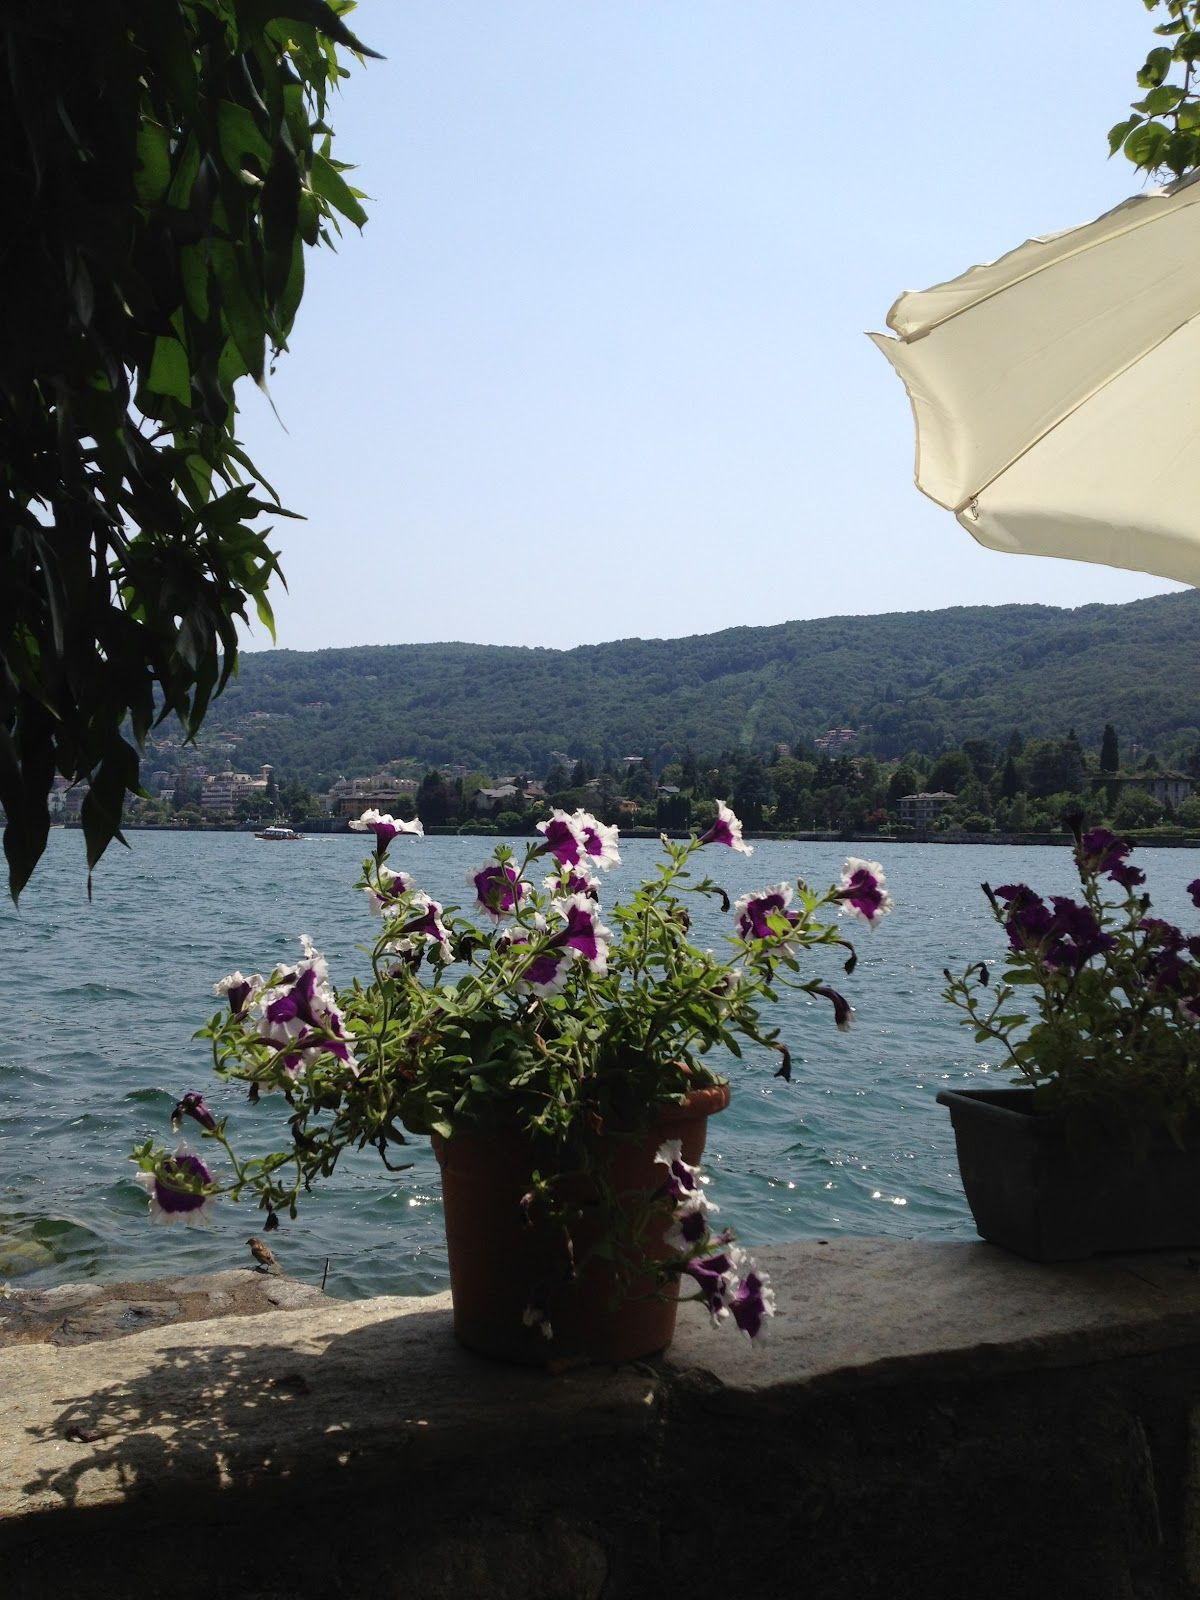 Looking at Lake Maggiore from Isola Bella, Italy